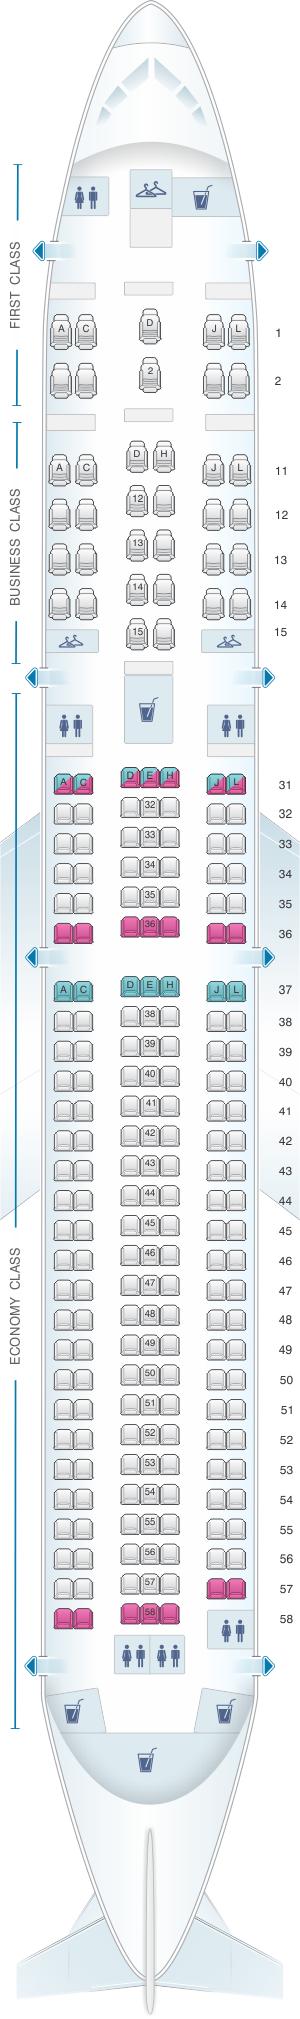 Seat map for Air China Boeing B767 300